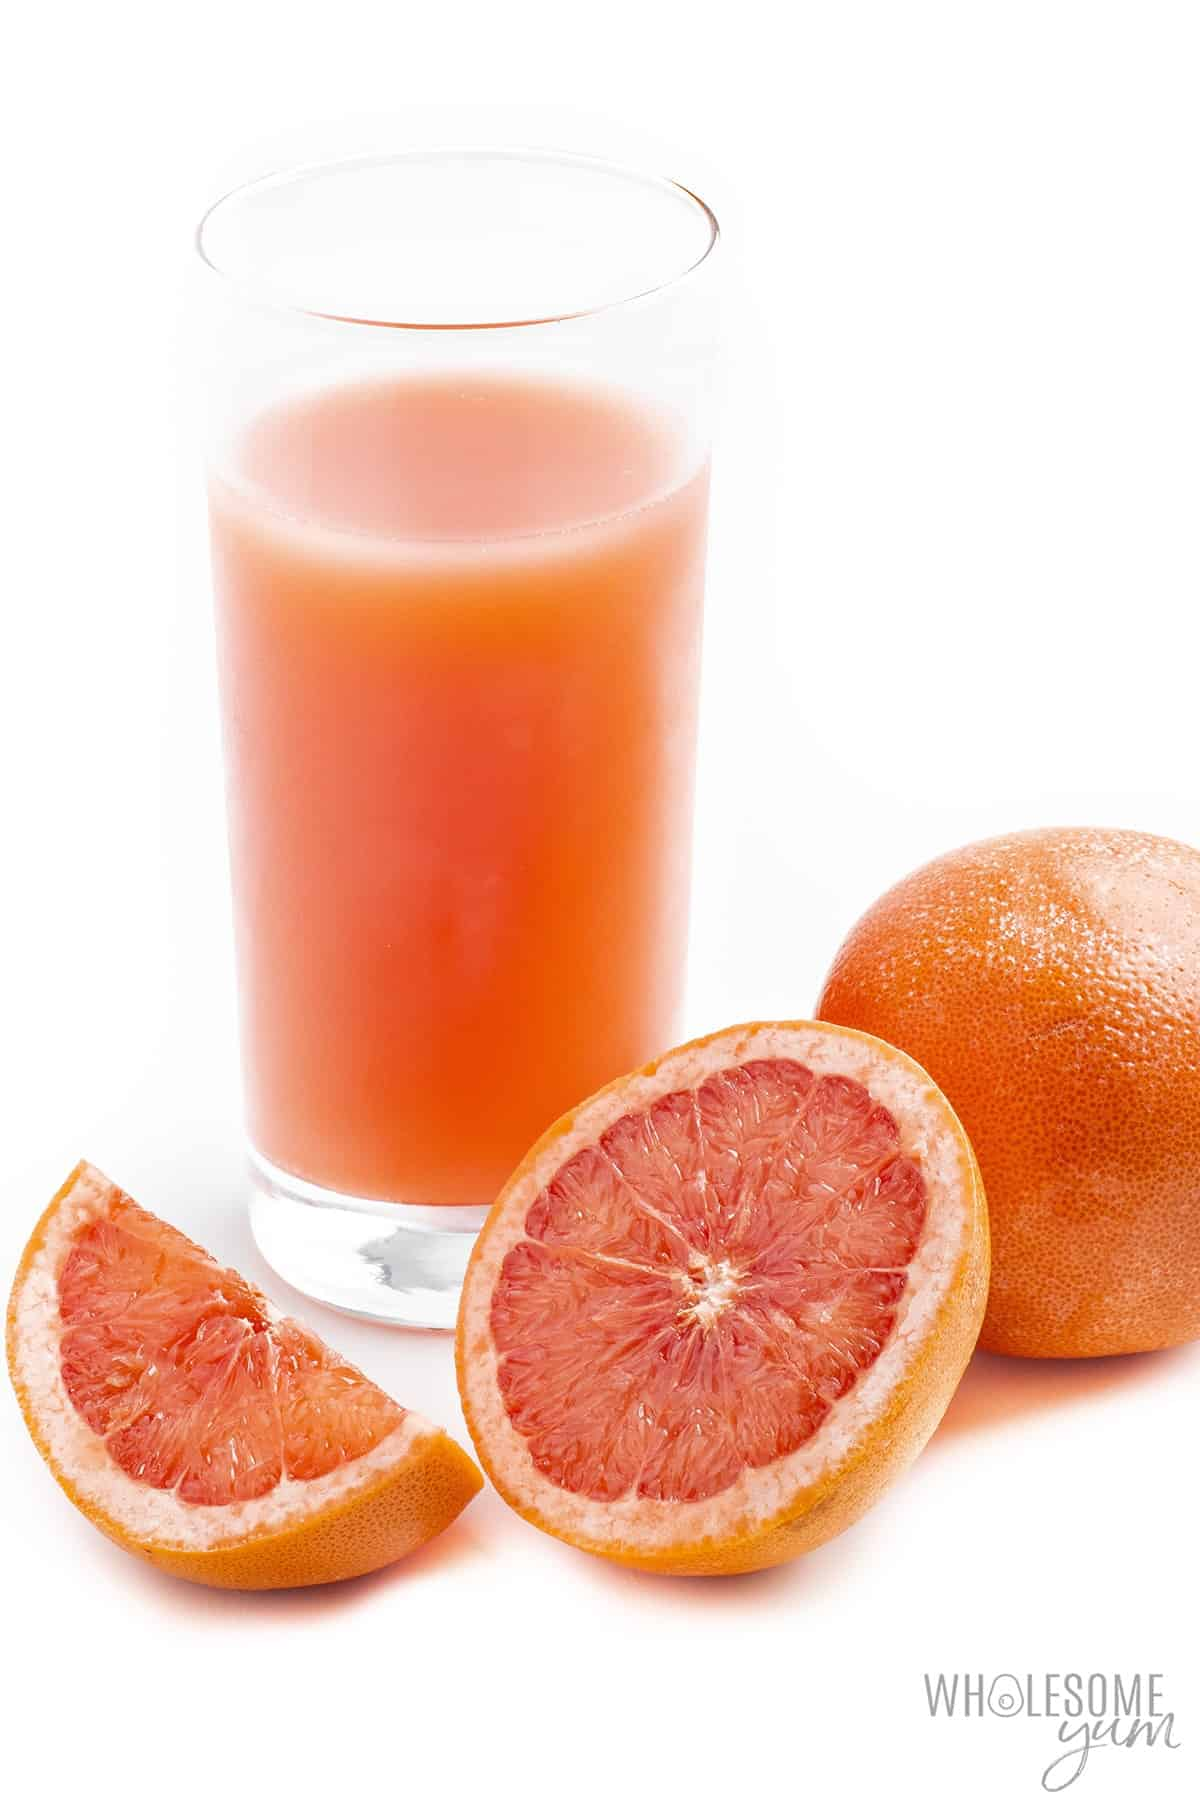 How many carbs in grapefruit? This glass of grapefruit juice with sliced whole grapefruit is too high in carbs for a keto diet.